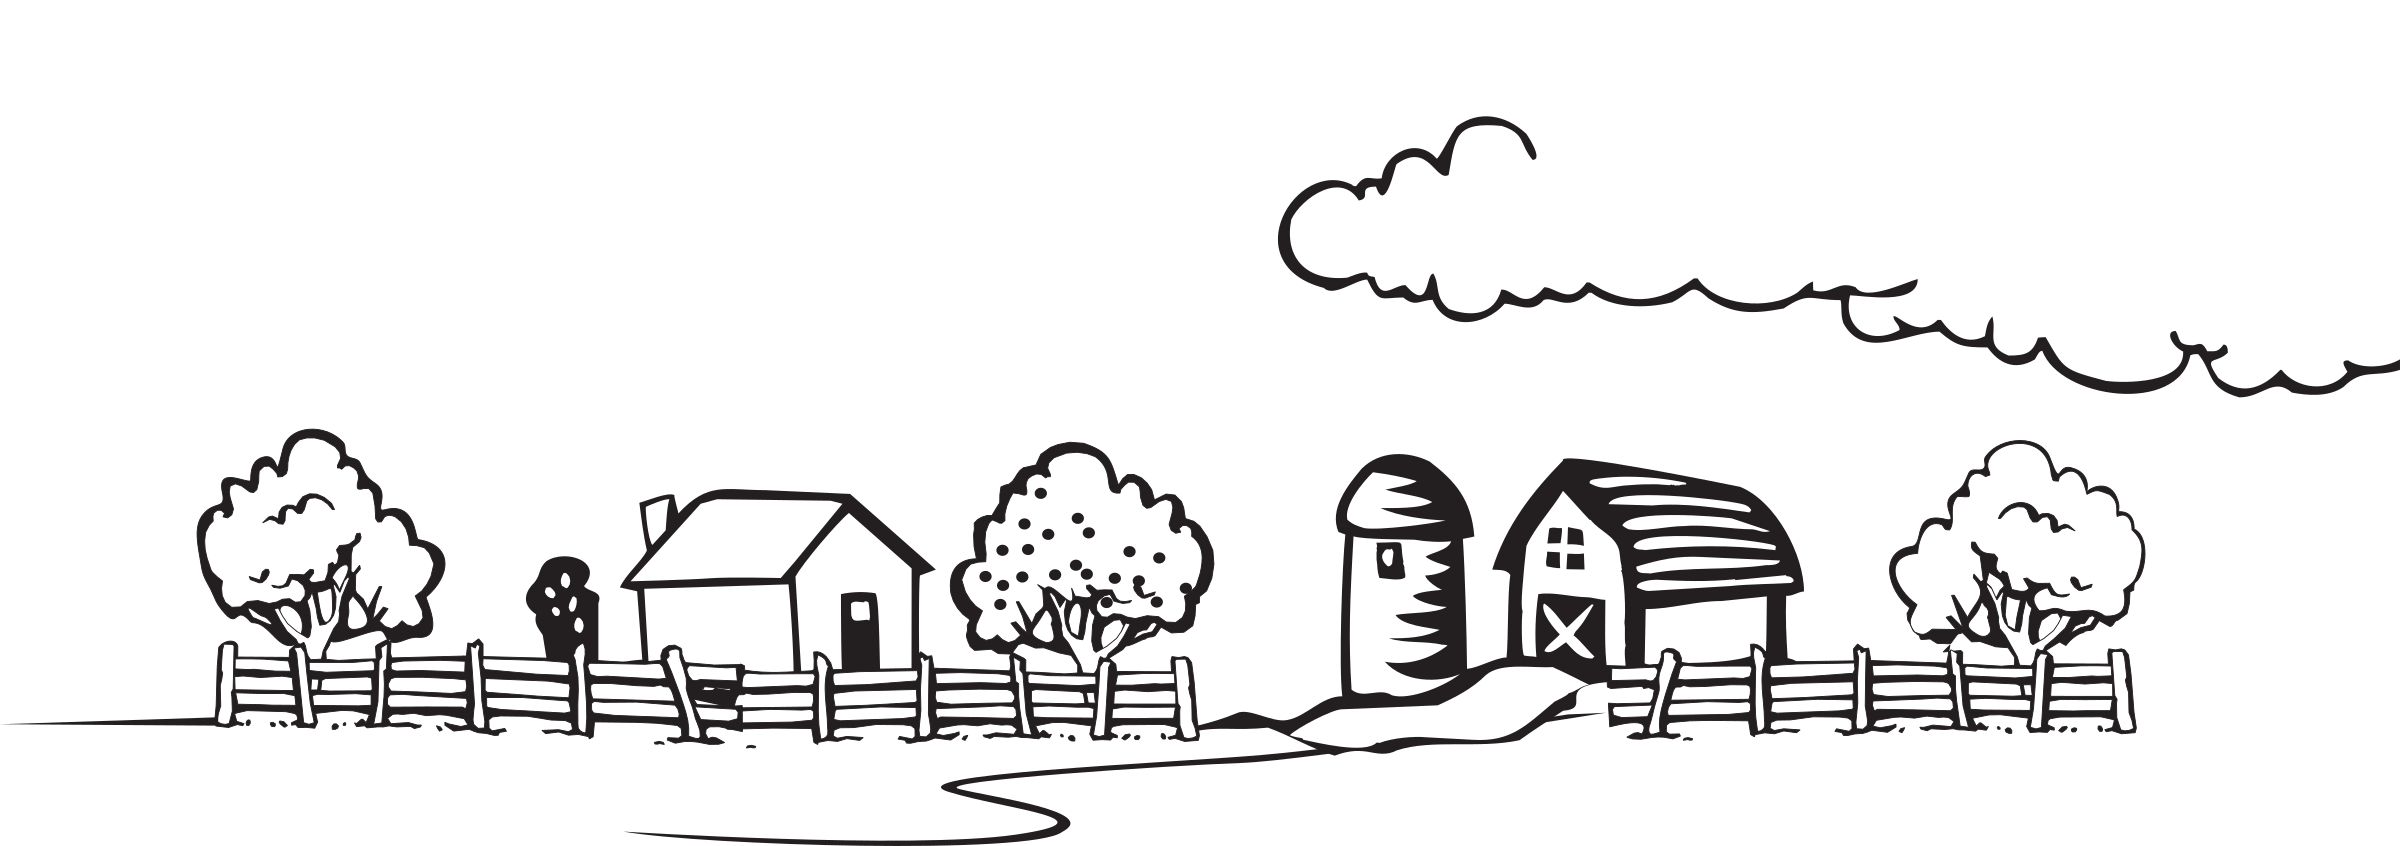 Field Clipart Free Download On Webstockreview